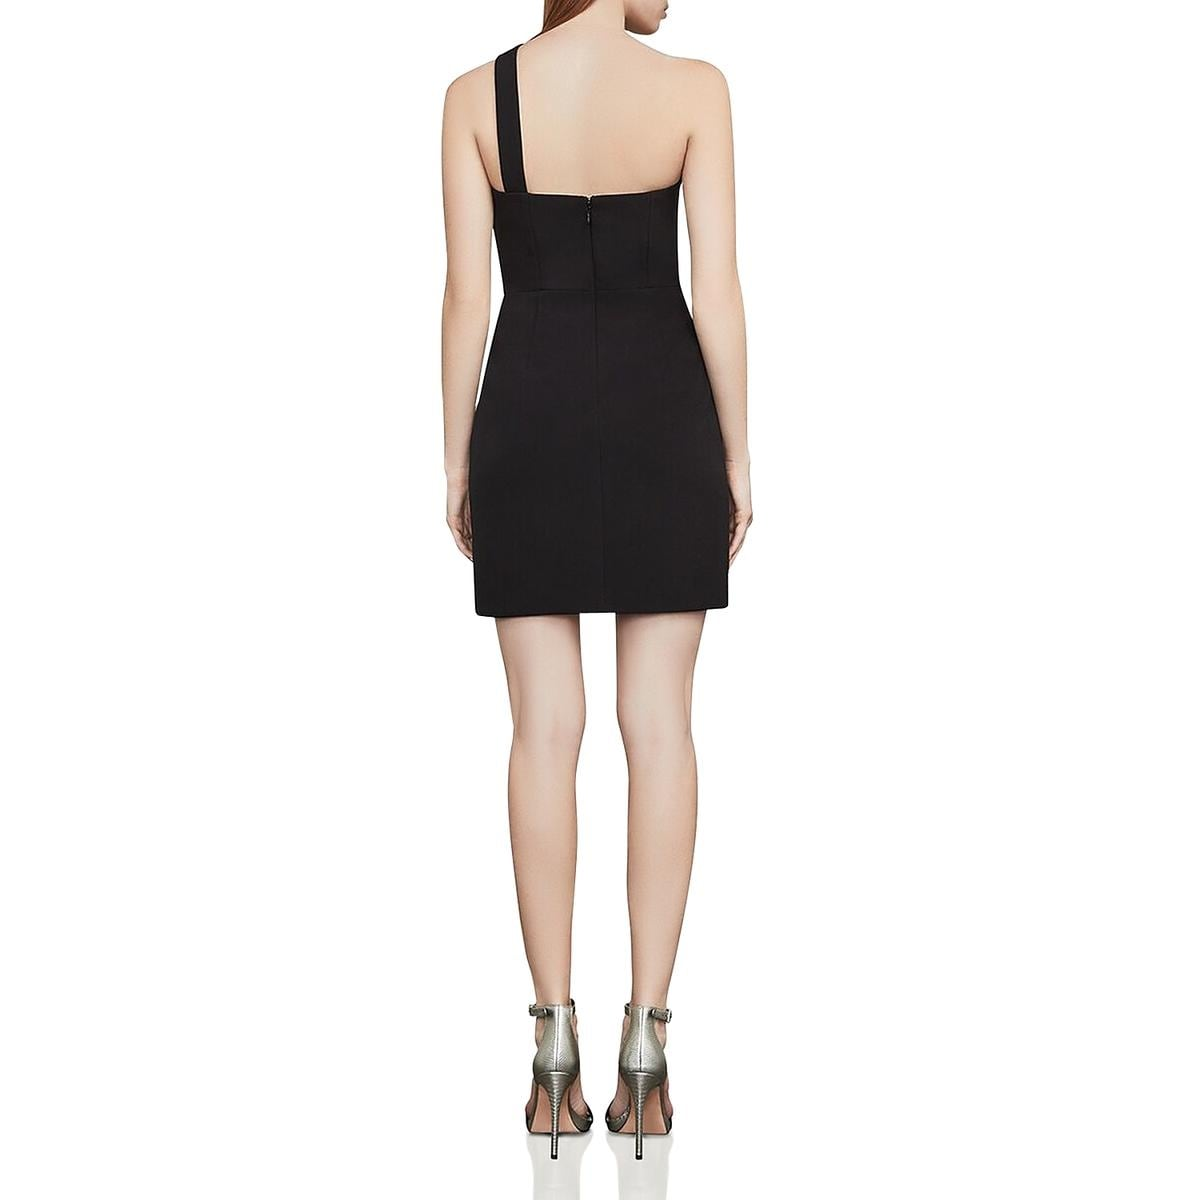 a3de1bd6bc5 Shop BCBG Max Azria Womens Party Dress Cut-Out One Shoulder - Free Shipping  Today - Overstock - 28079884